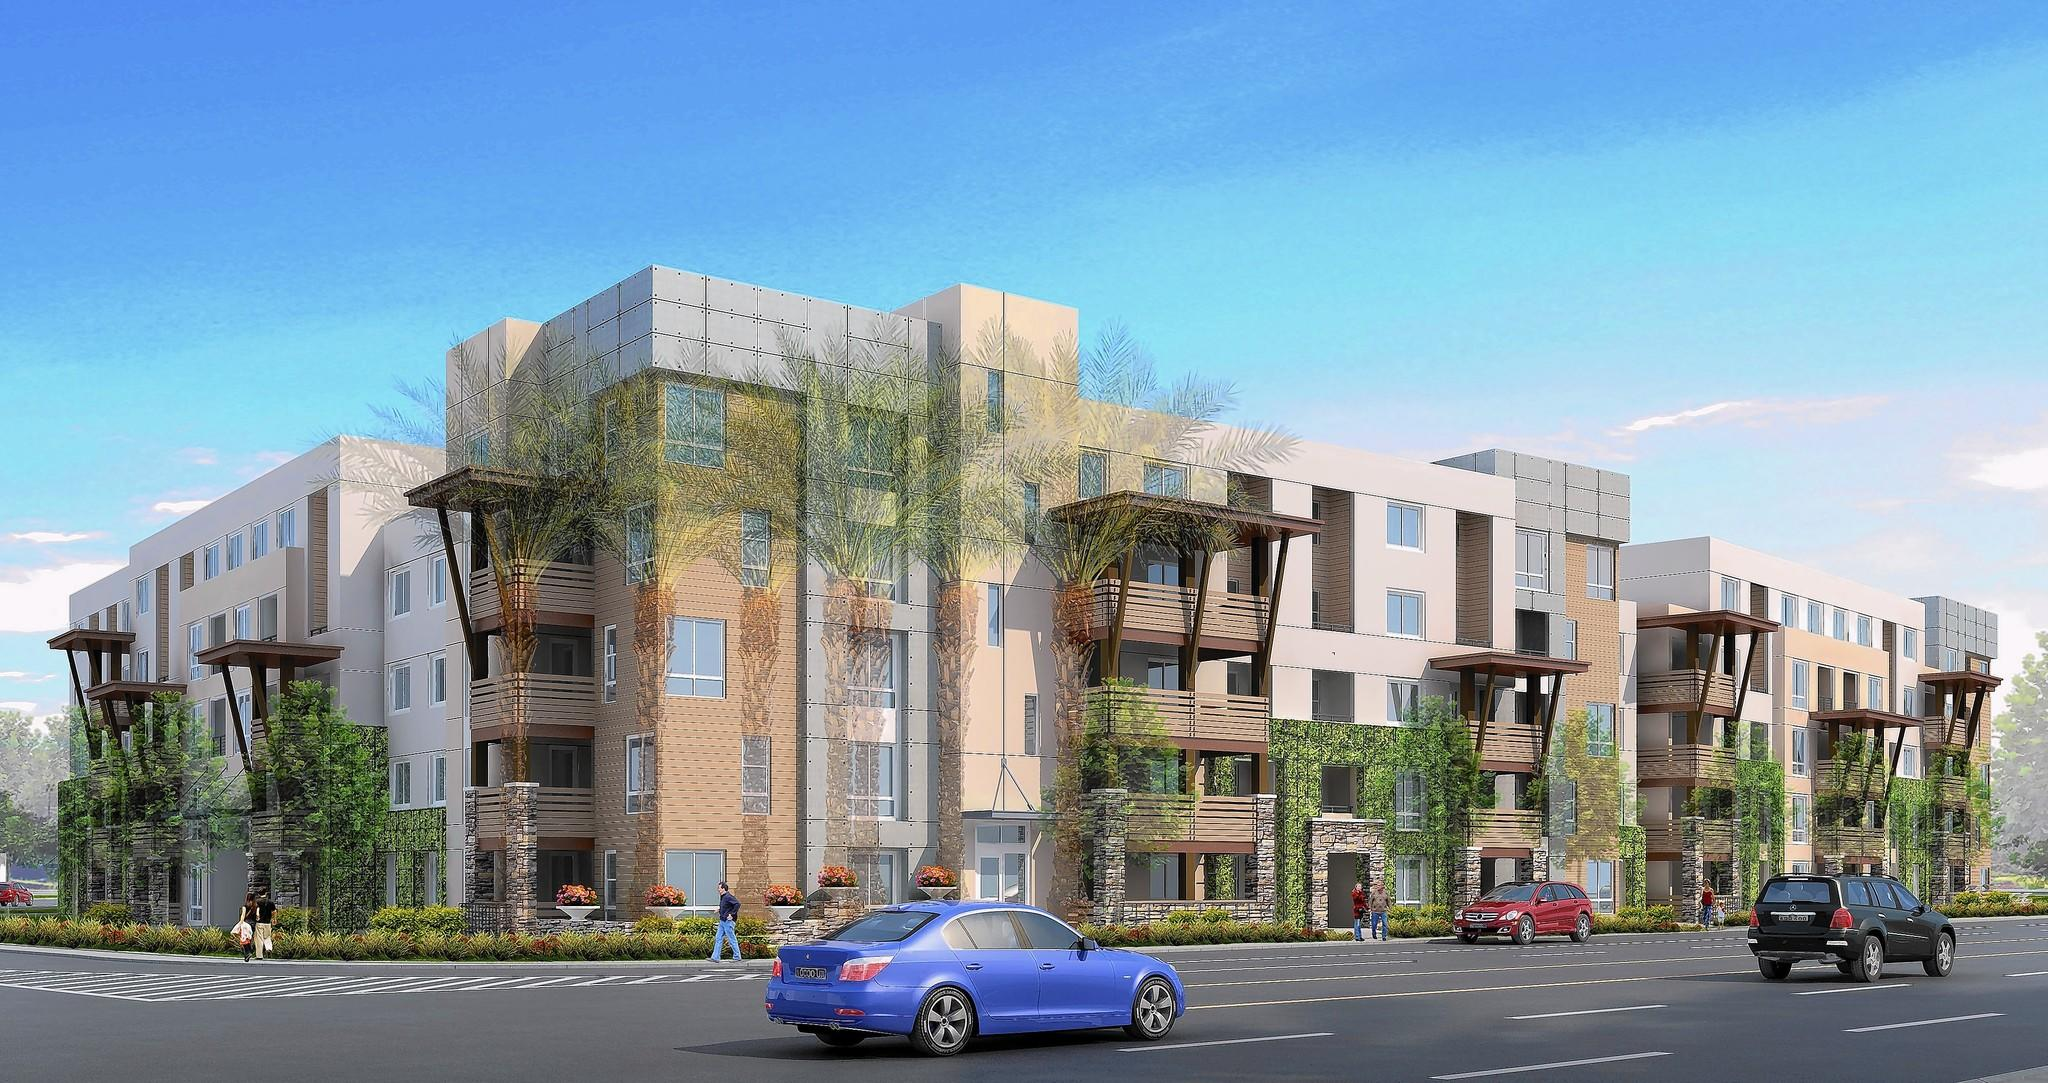 Pictured is a conceptual drawing of a proposed 240-unit apartment complex at 125 E. Baker St., Costa Mesa, that would replace a 1970s-era office building.